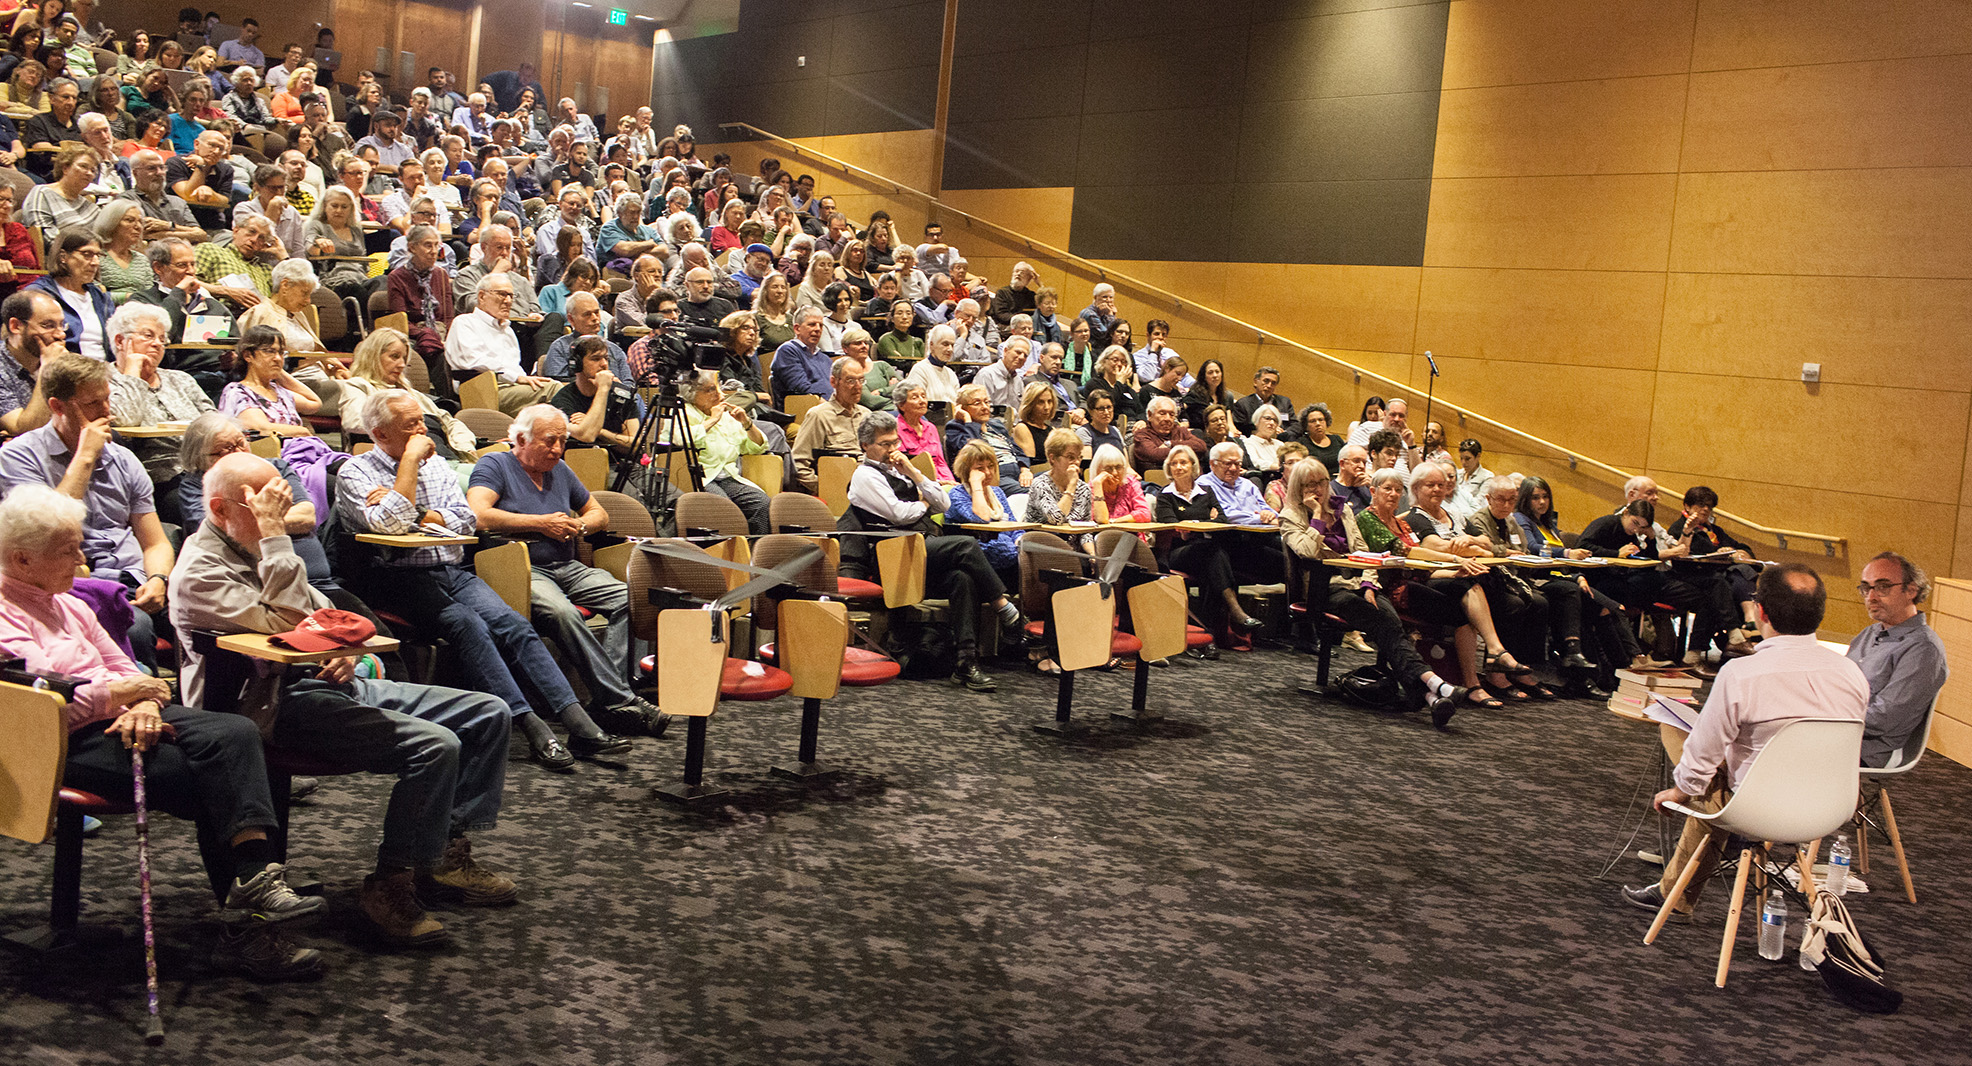 A crowded lecture hall at the University of Washington campus, with two speakers in discussion at the front